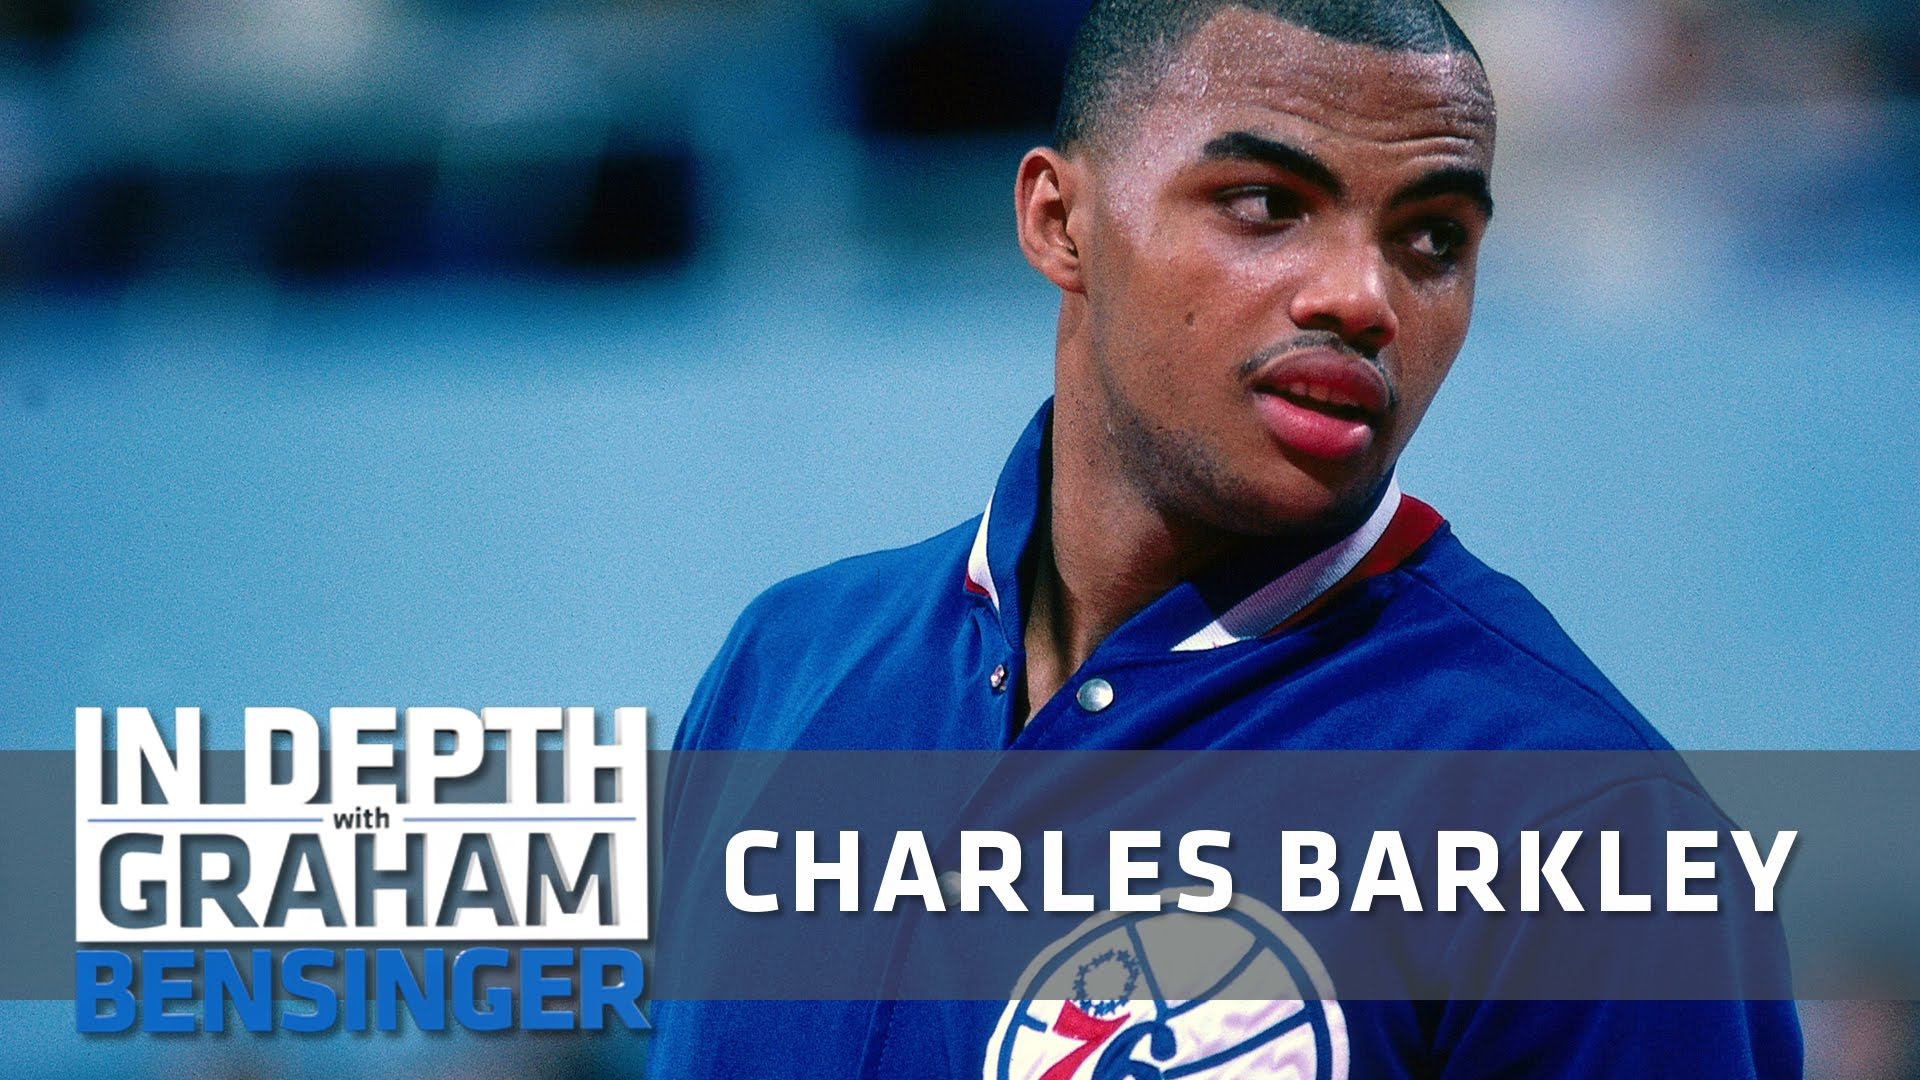 Charles Barkley says he got really fat so the 76ers wouldn't draft him